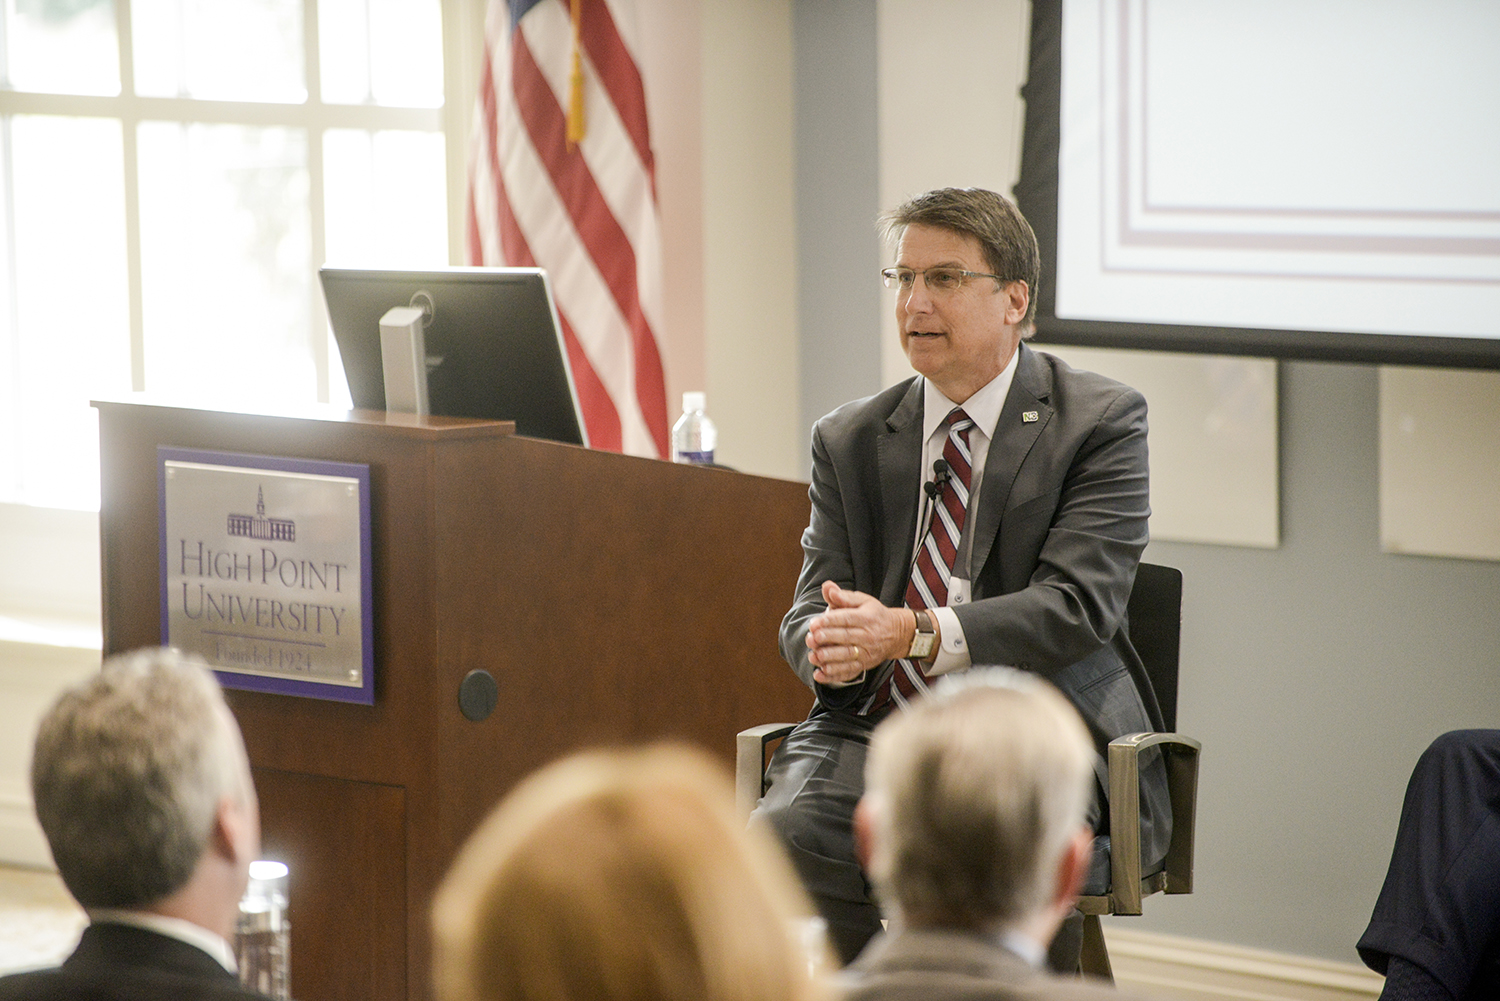 North Carolina Governor Pat McCrory discussed the crucial role higher education plays in the future of NC.